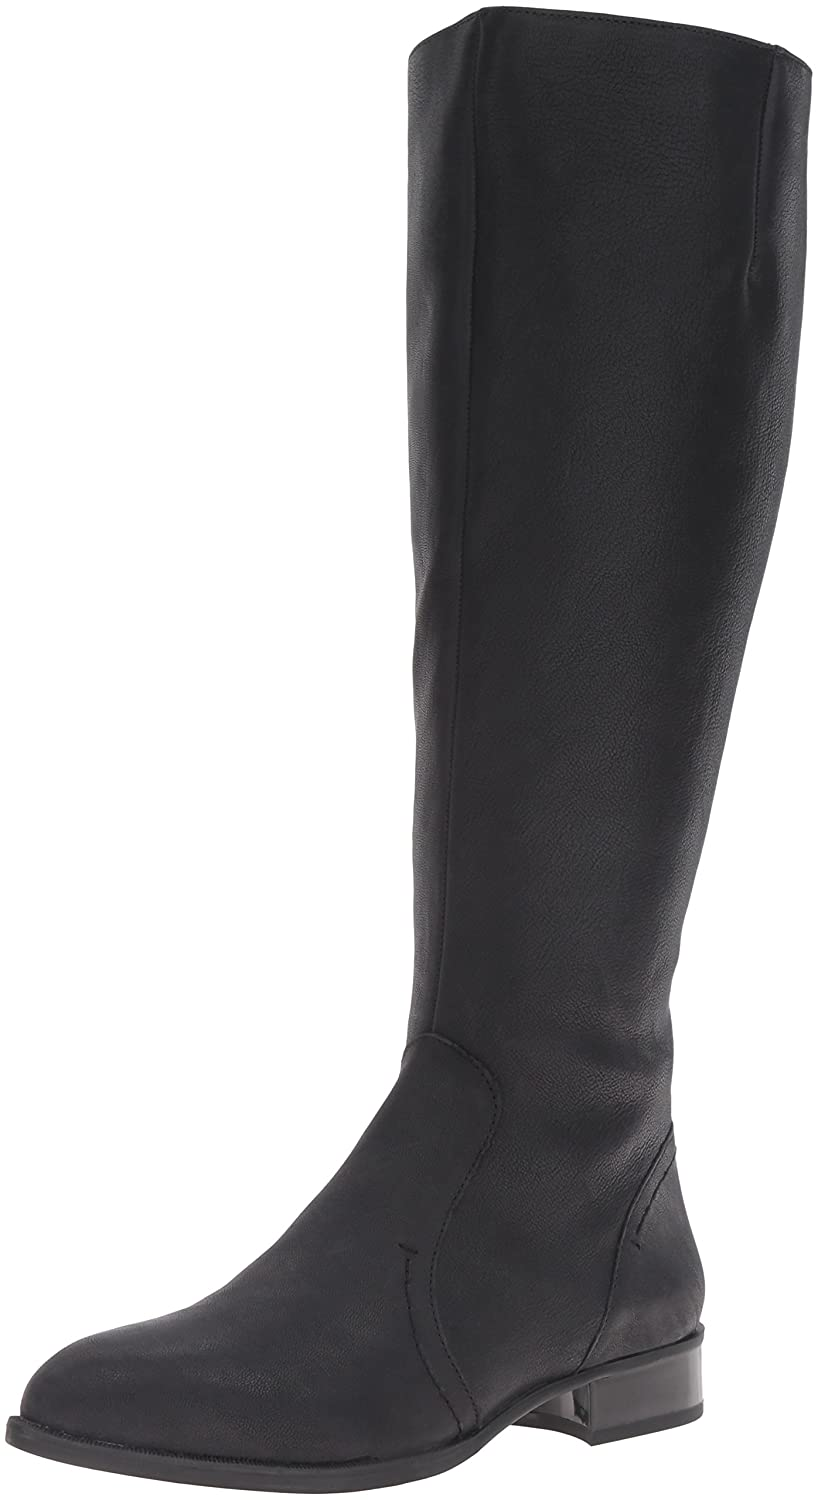 Nine West Women's Nicolah-Wide Leather Winter Boot B01GITT6PQ 9 B(M) US|Black